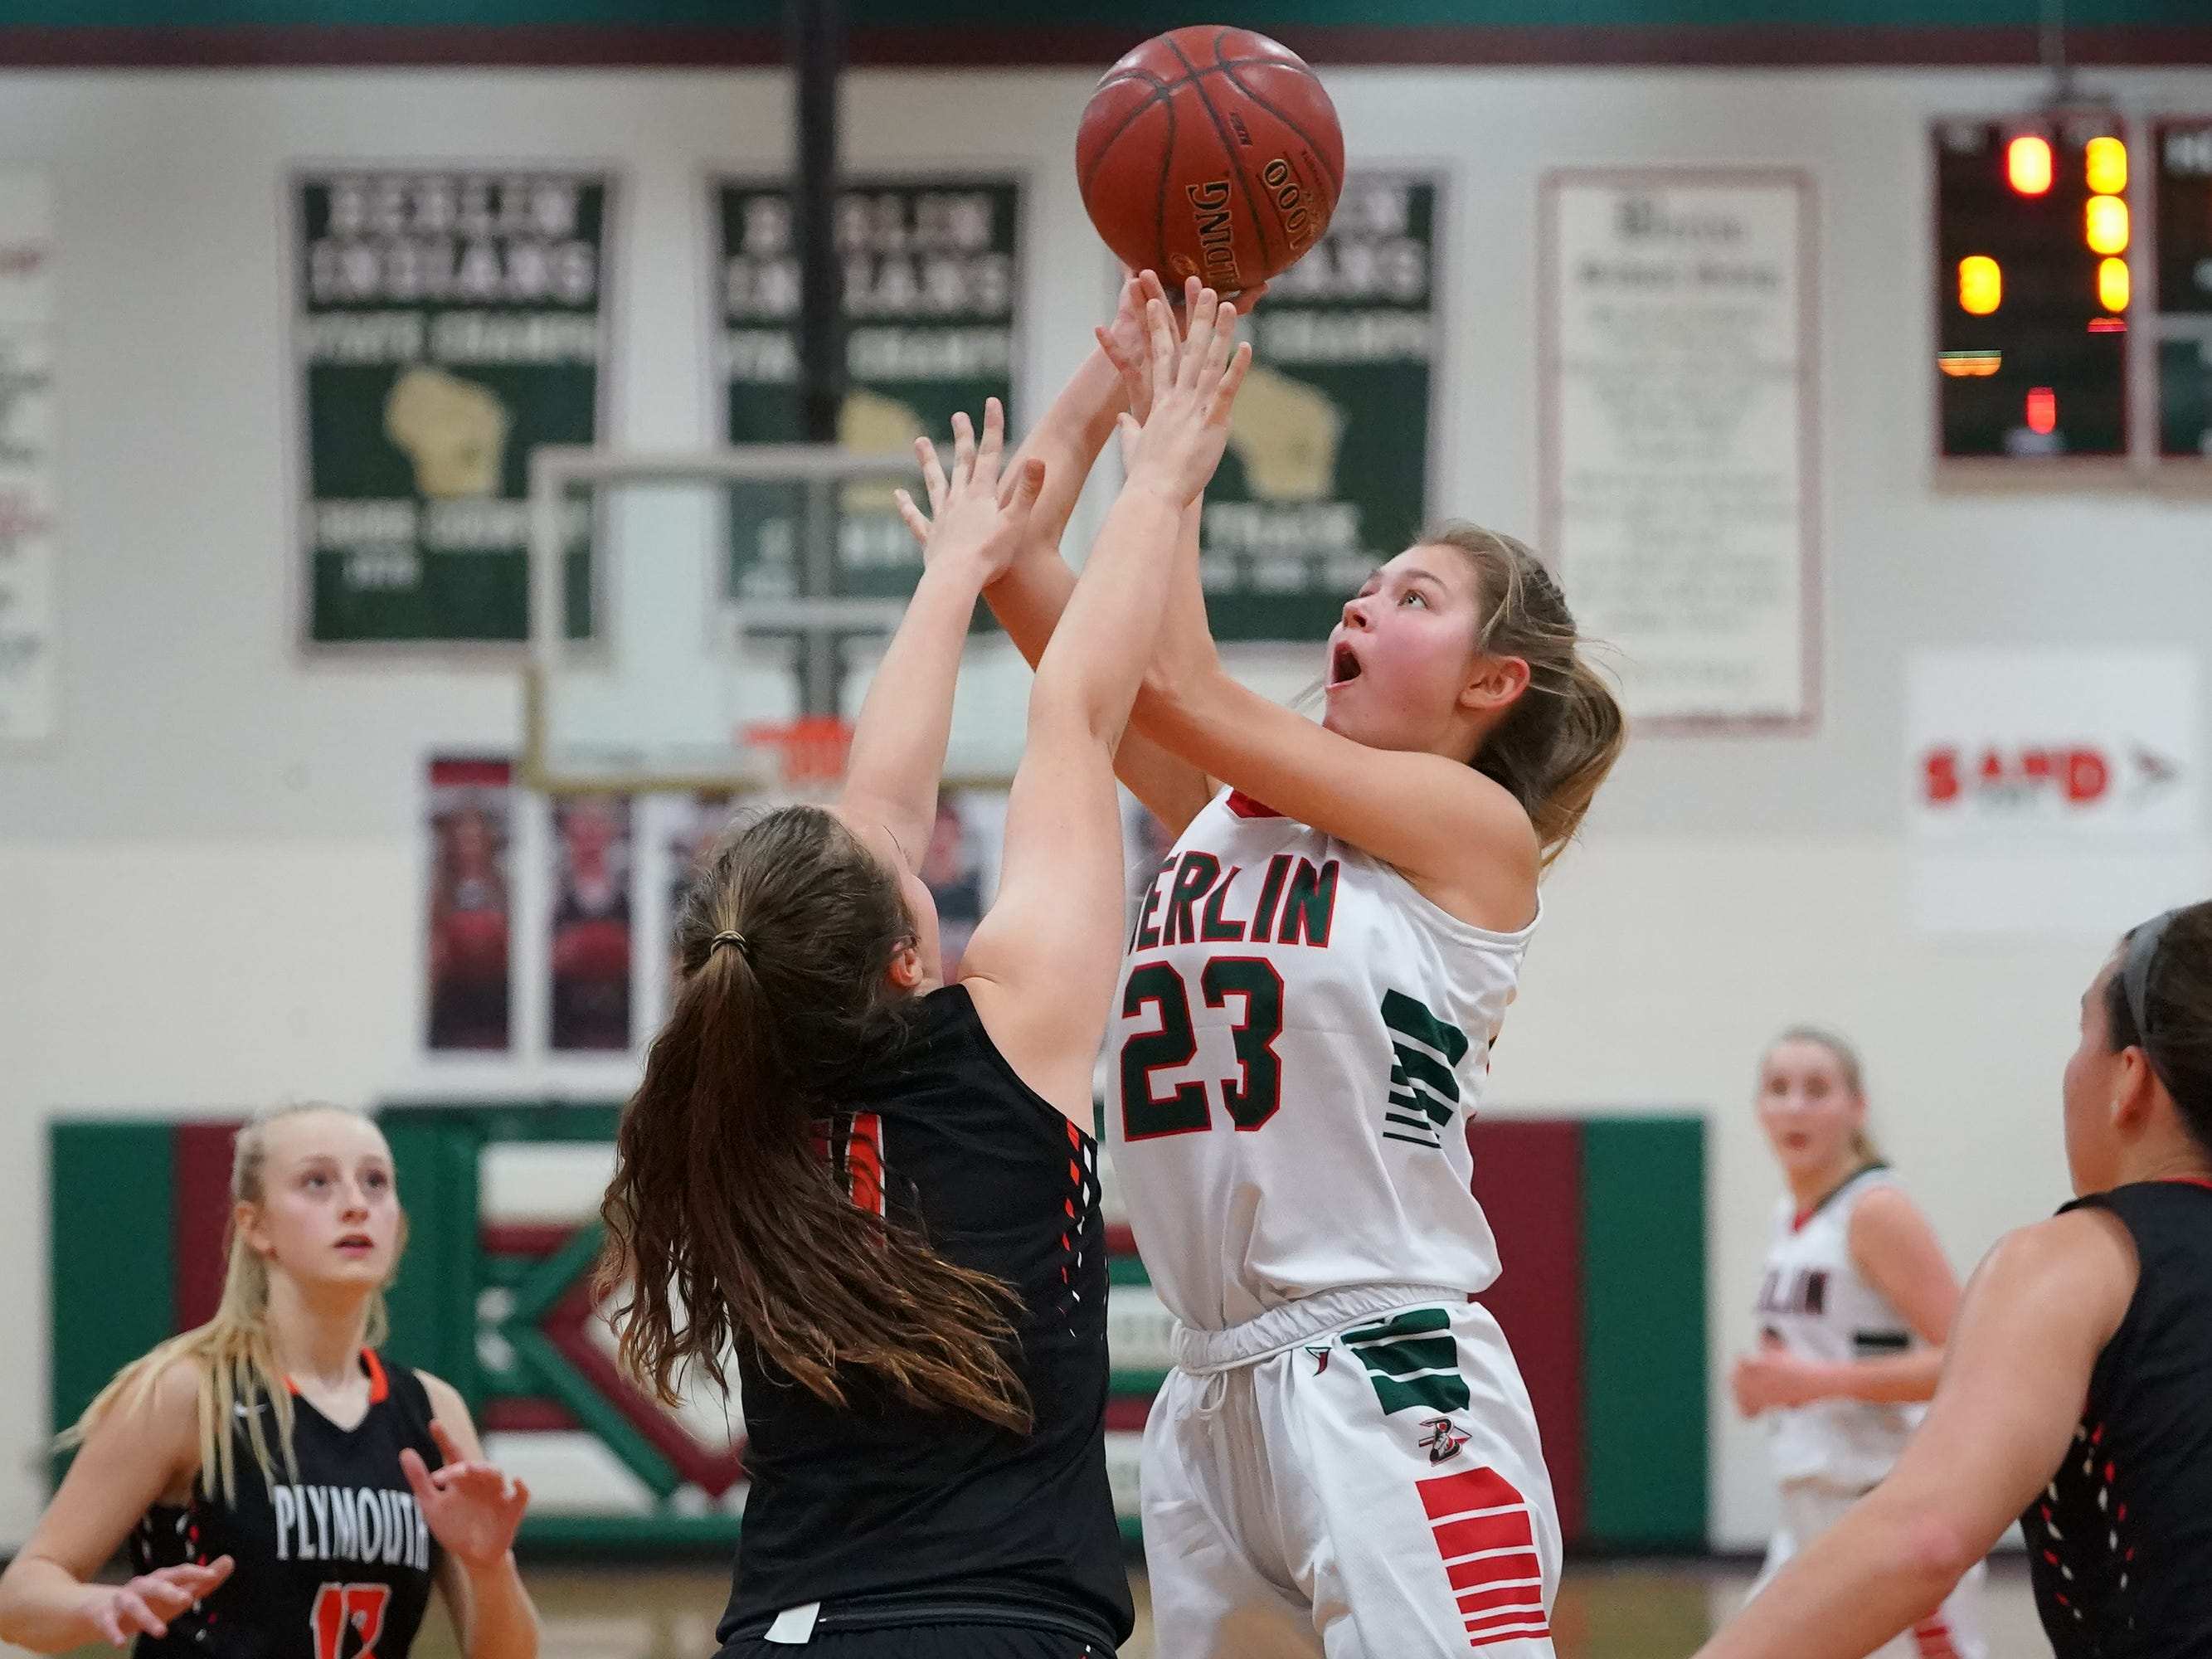 Emily Klawitter (23) of Berlin jumps for a shot. The Berlin Indians hosted the Plymouth Panthers in an East Central Conference basketball game Thursday evening, December 13, 2018.